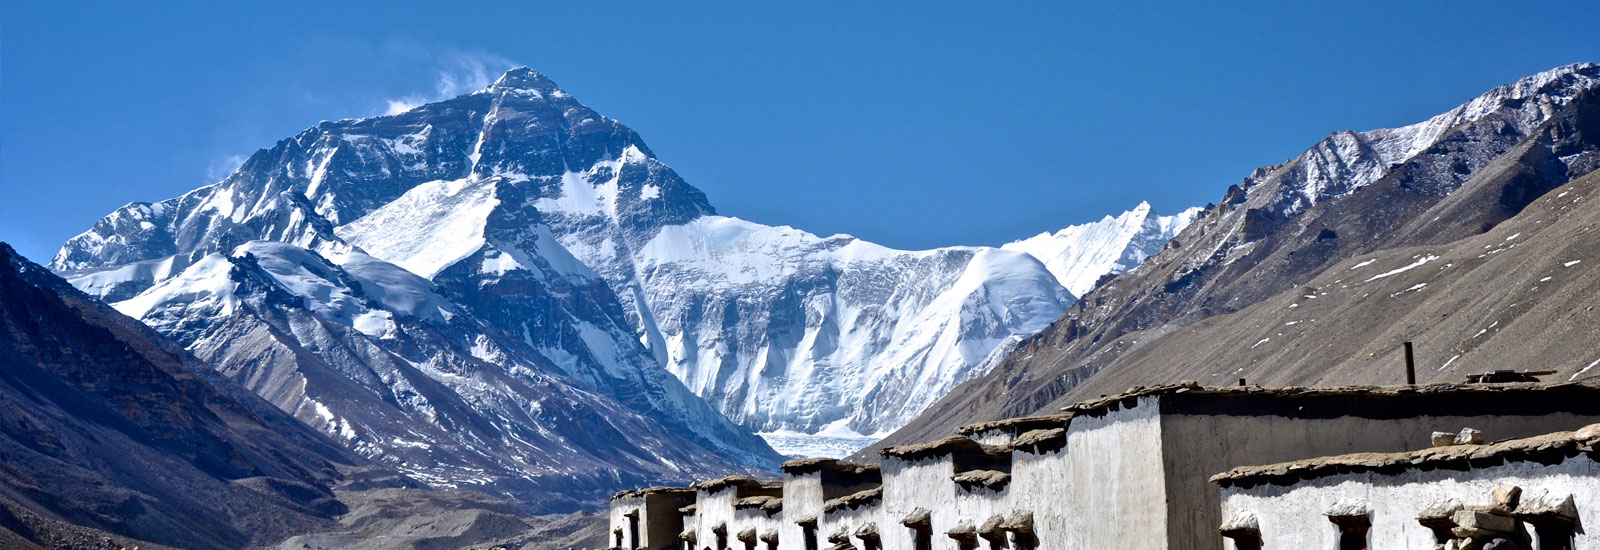 Travelling Students Top Deals-Tibet Exploration 2015